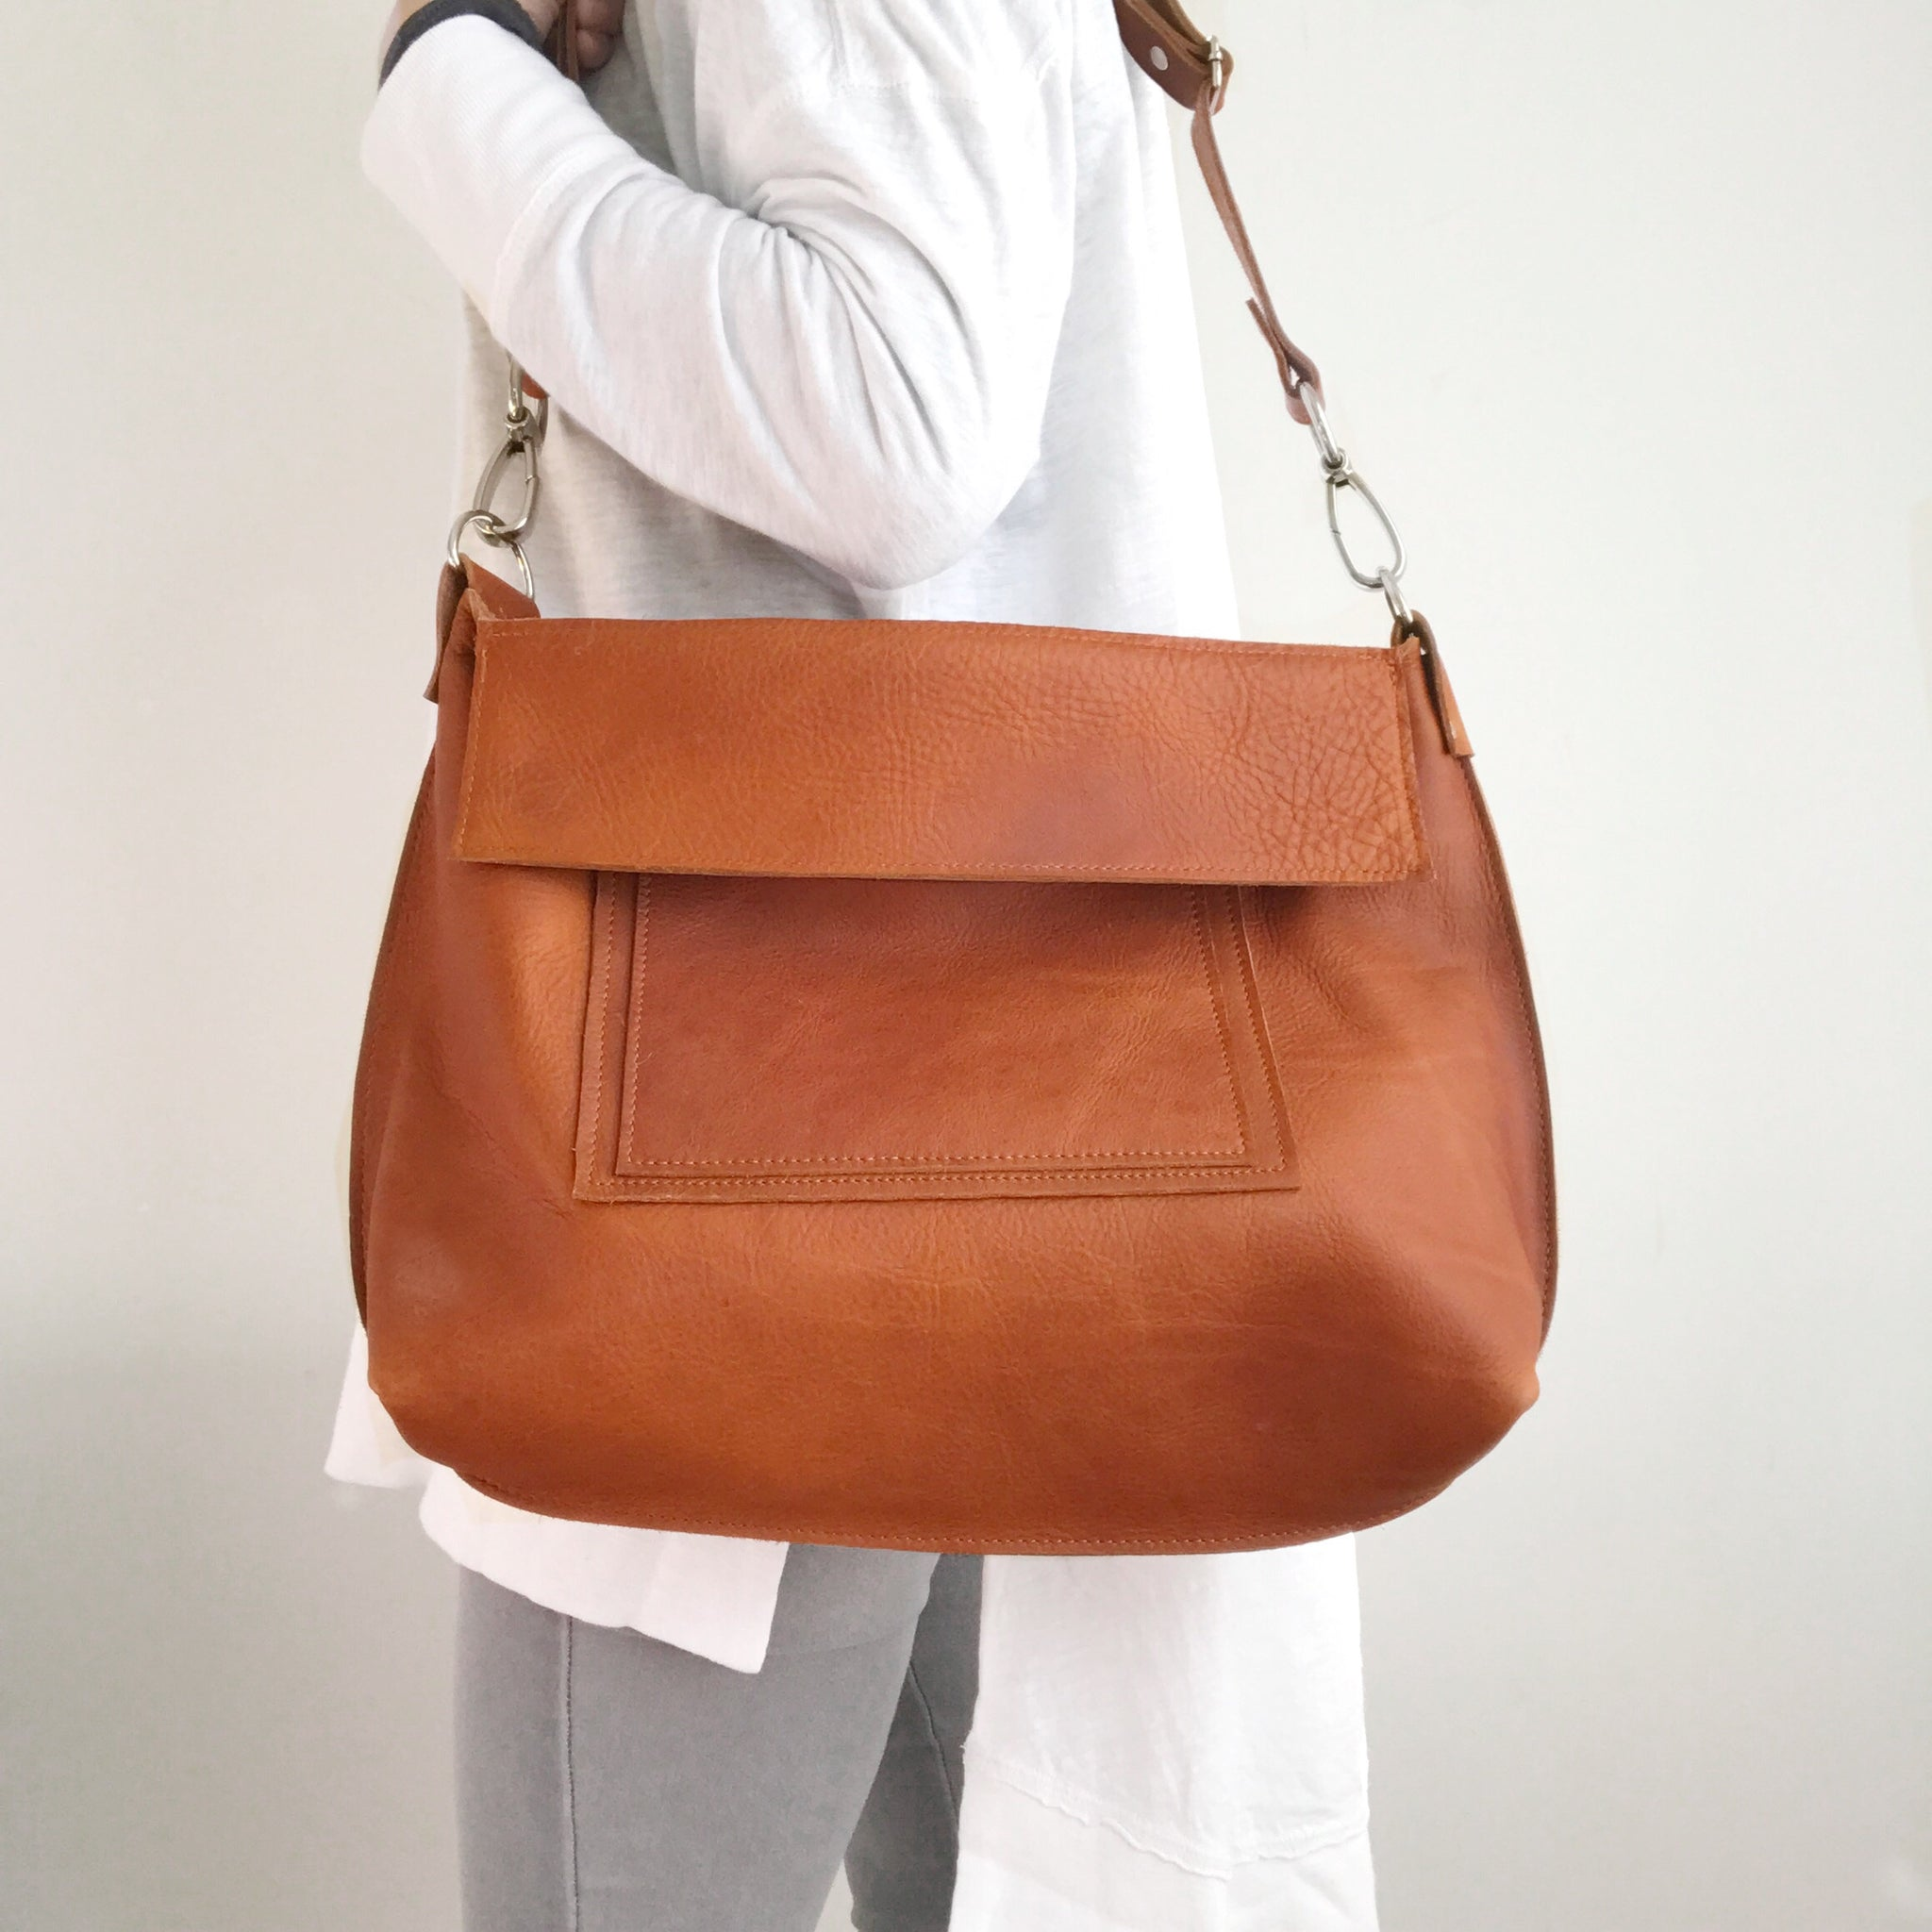 Tan Leather Messenger Tote